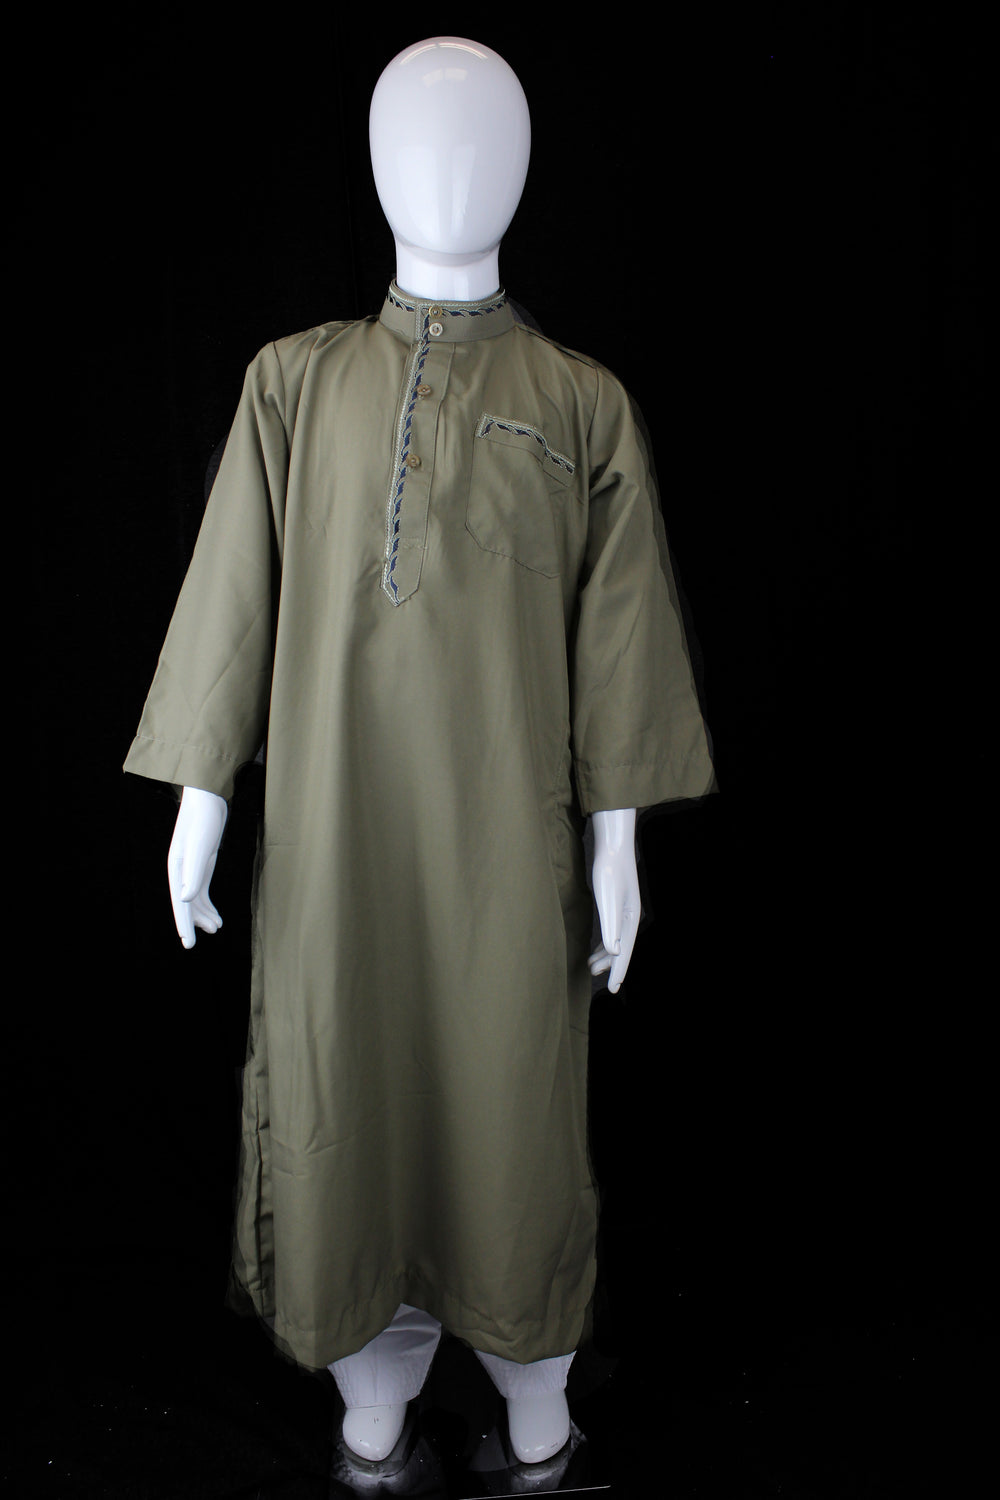 olive boy's jilbab with a collar and embroidery